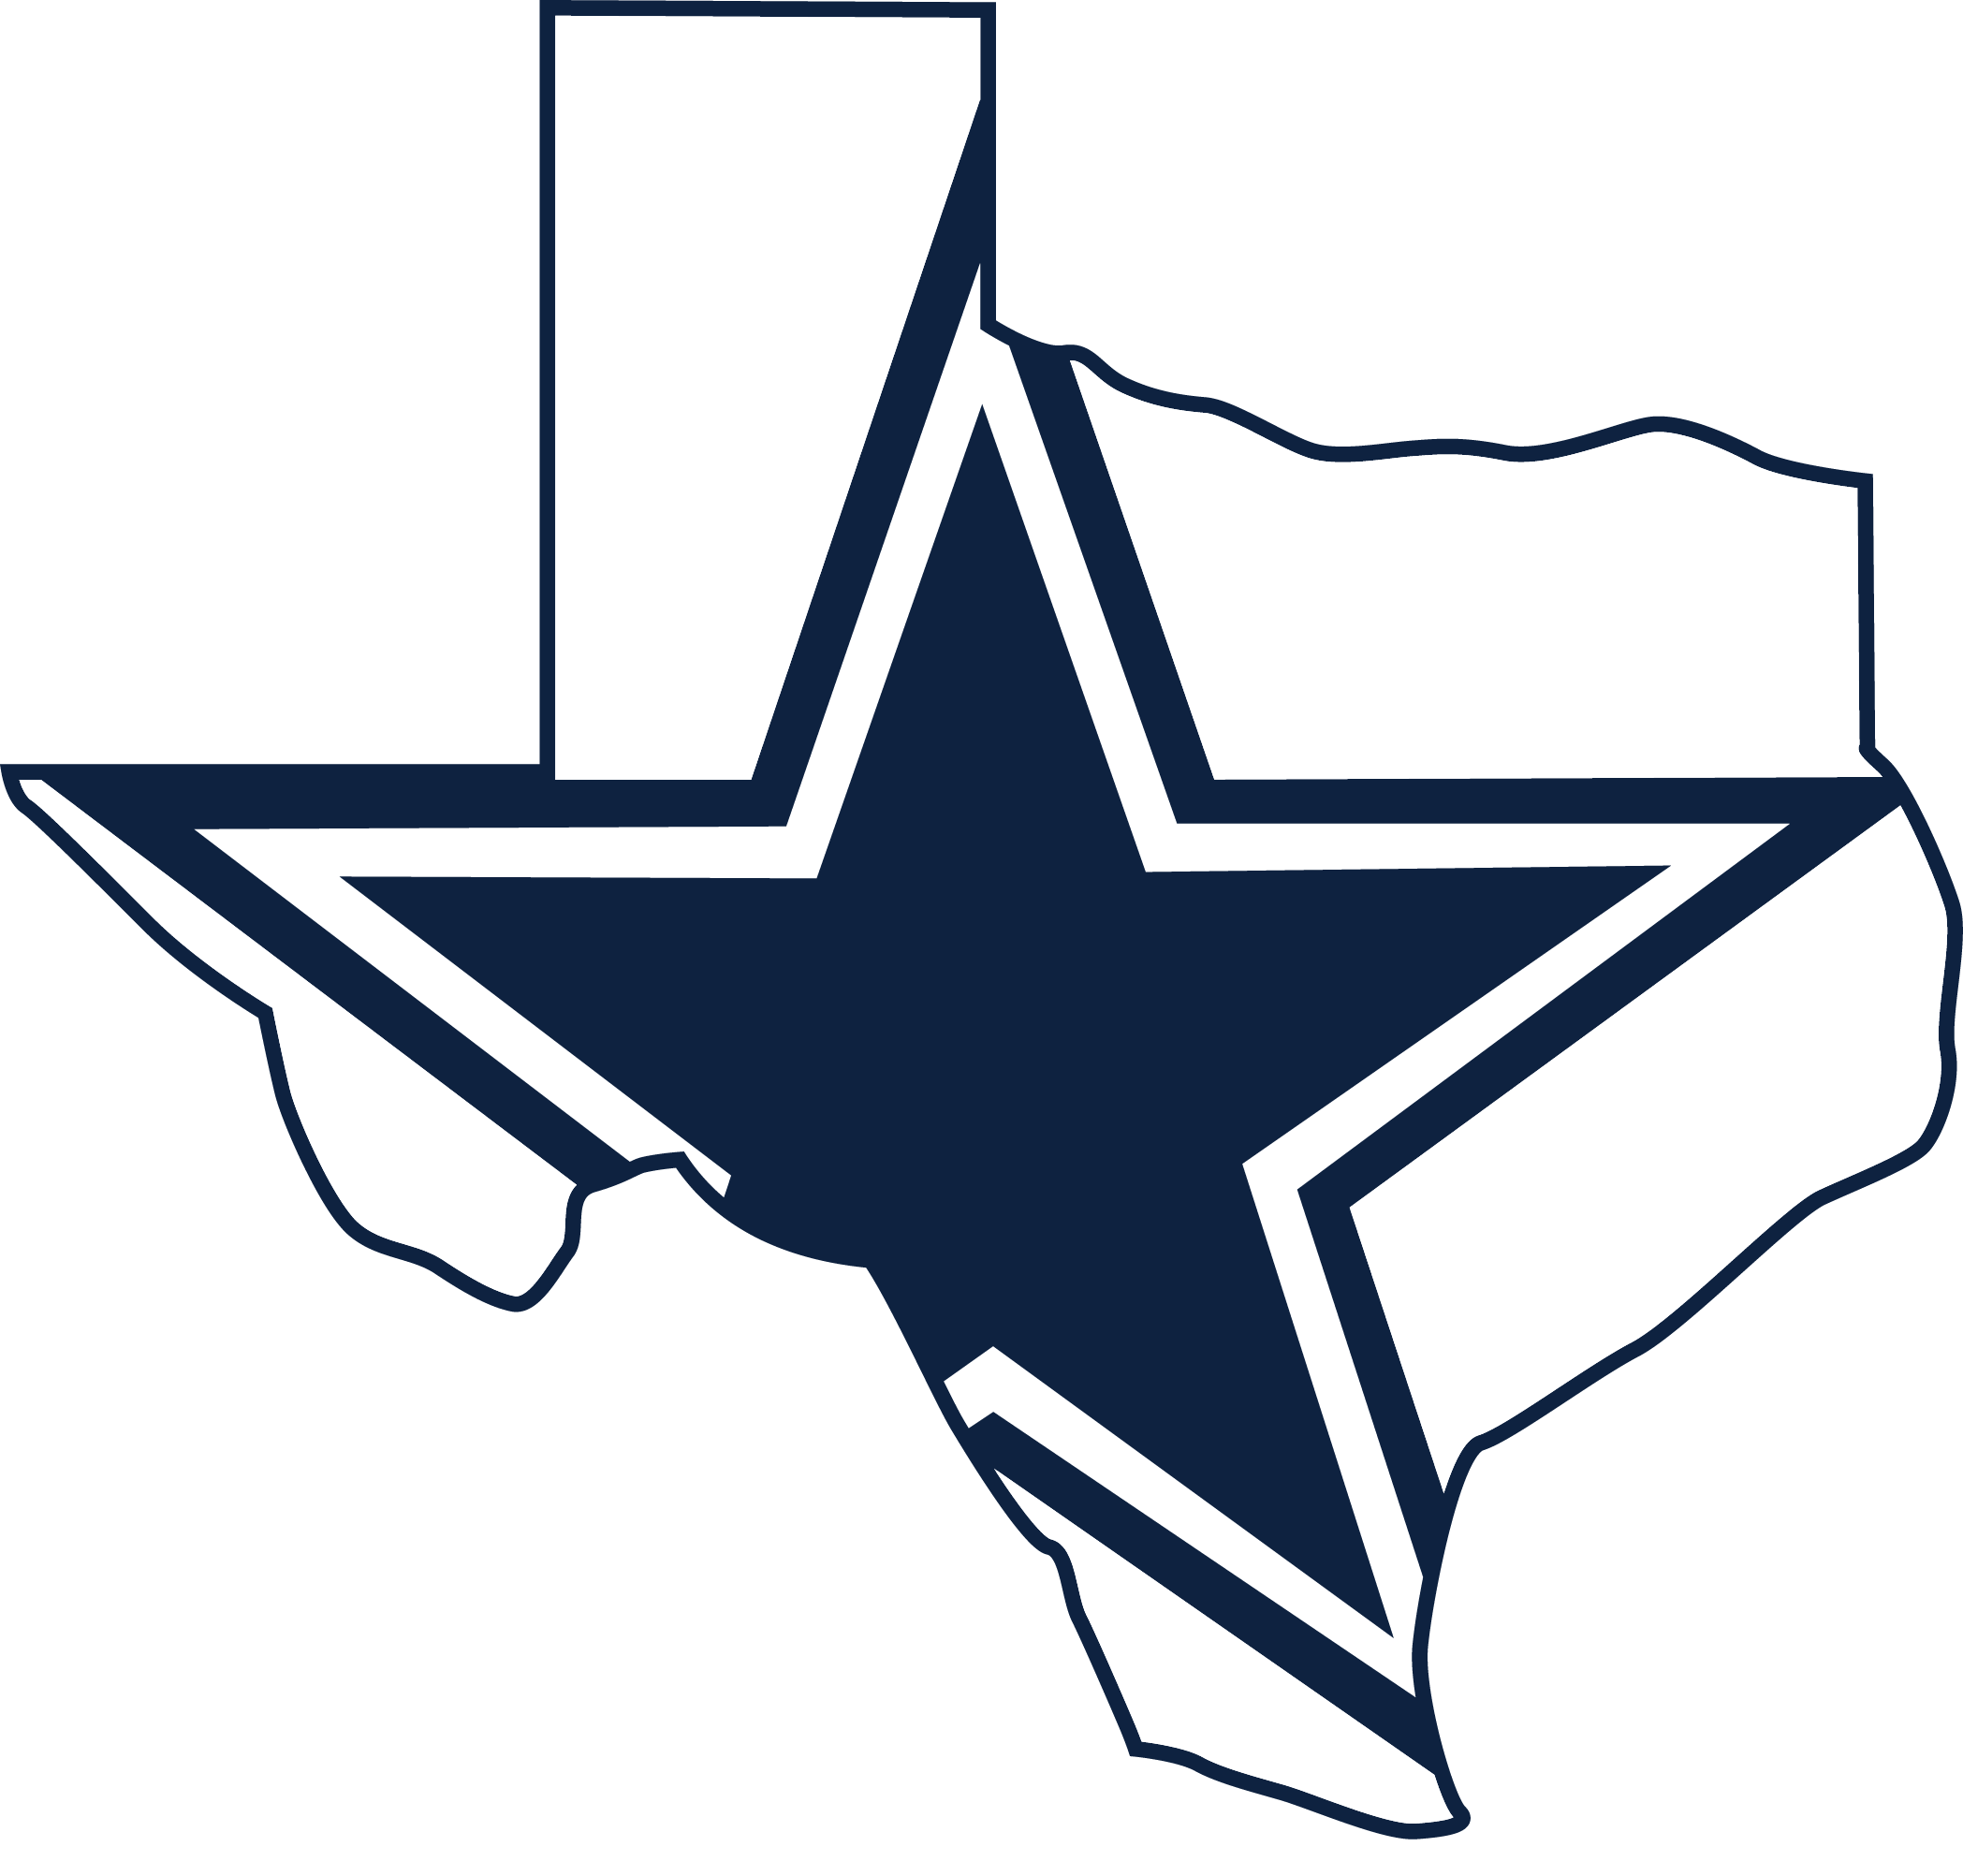 Pin by Melanie P on How 'bout them Cowboys! Dallas